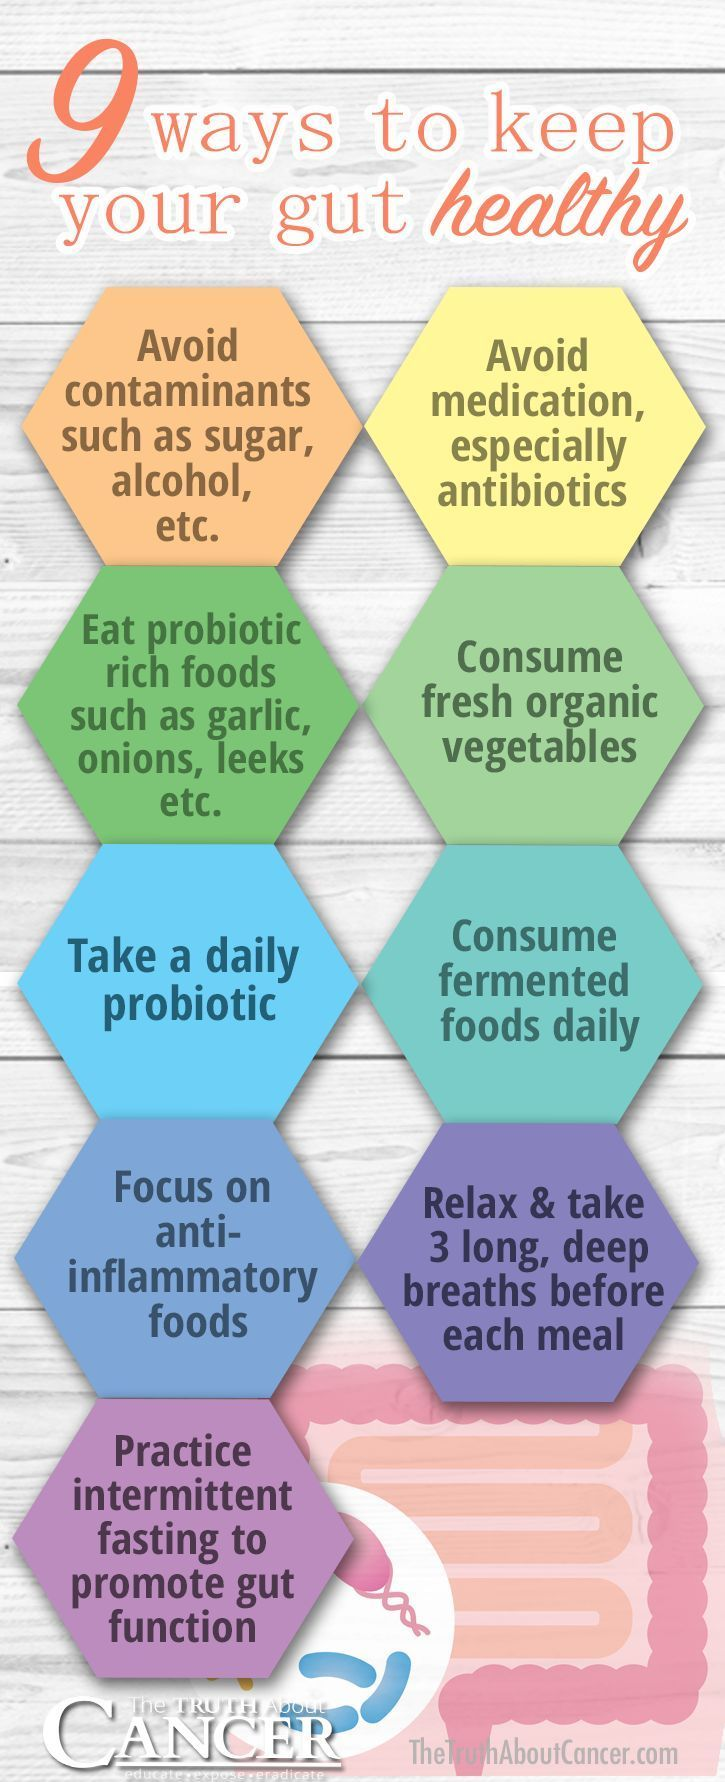 You got to check this out! Natural and holistic ways to treat cancer!